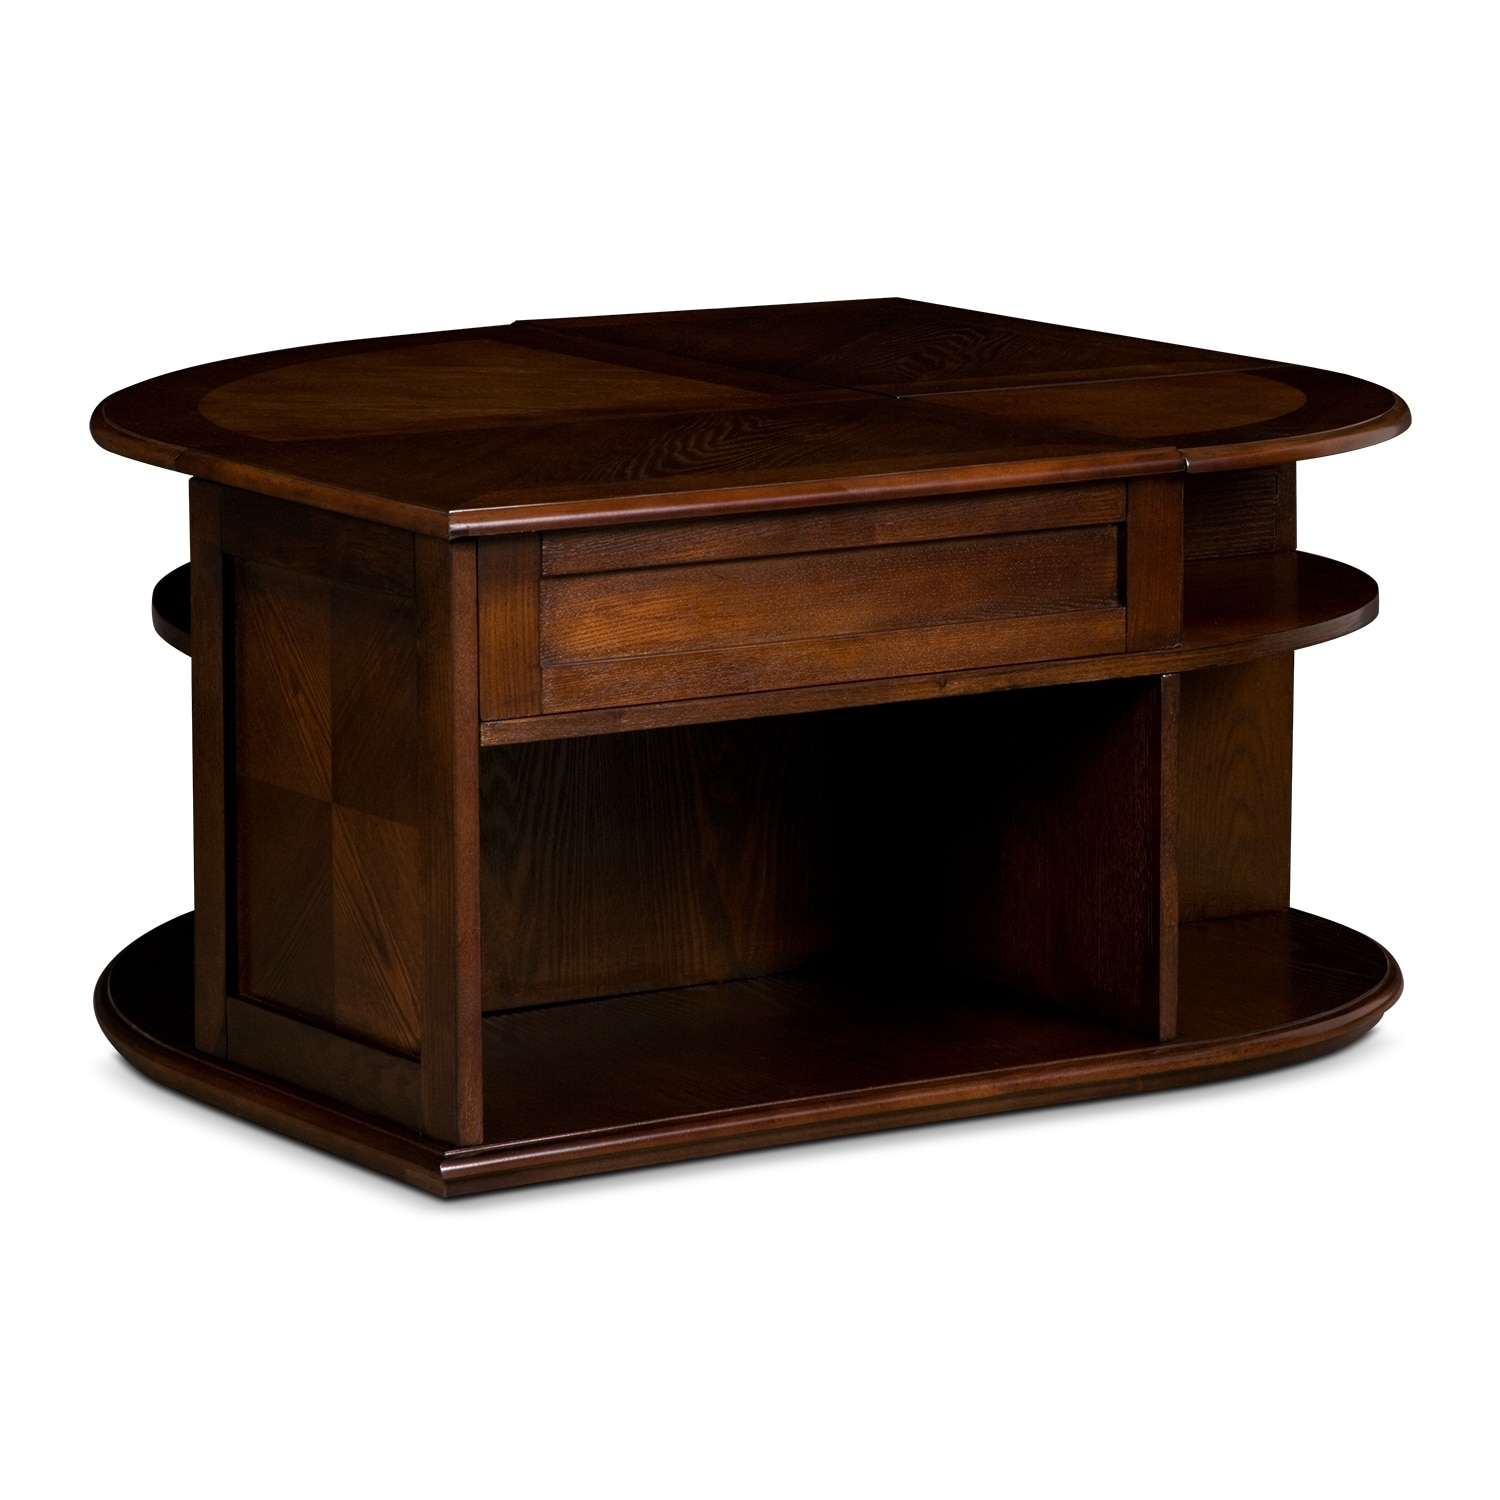 Riverdale Occasional Tables Lift-Top Cocktail Table